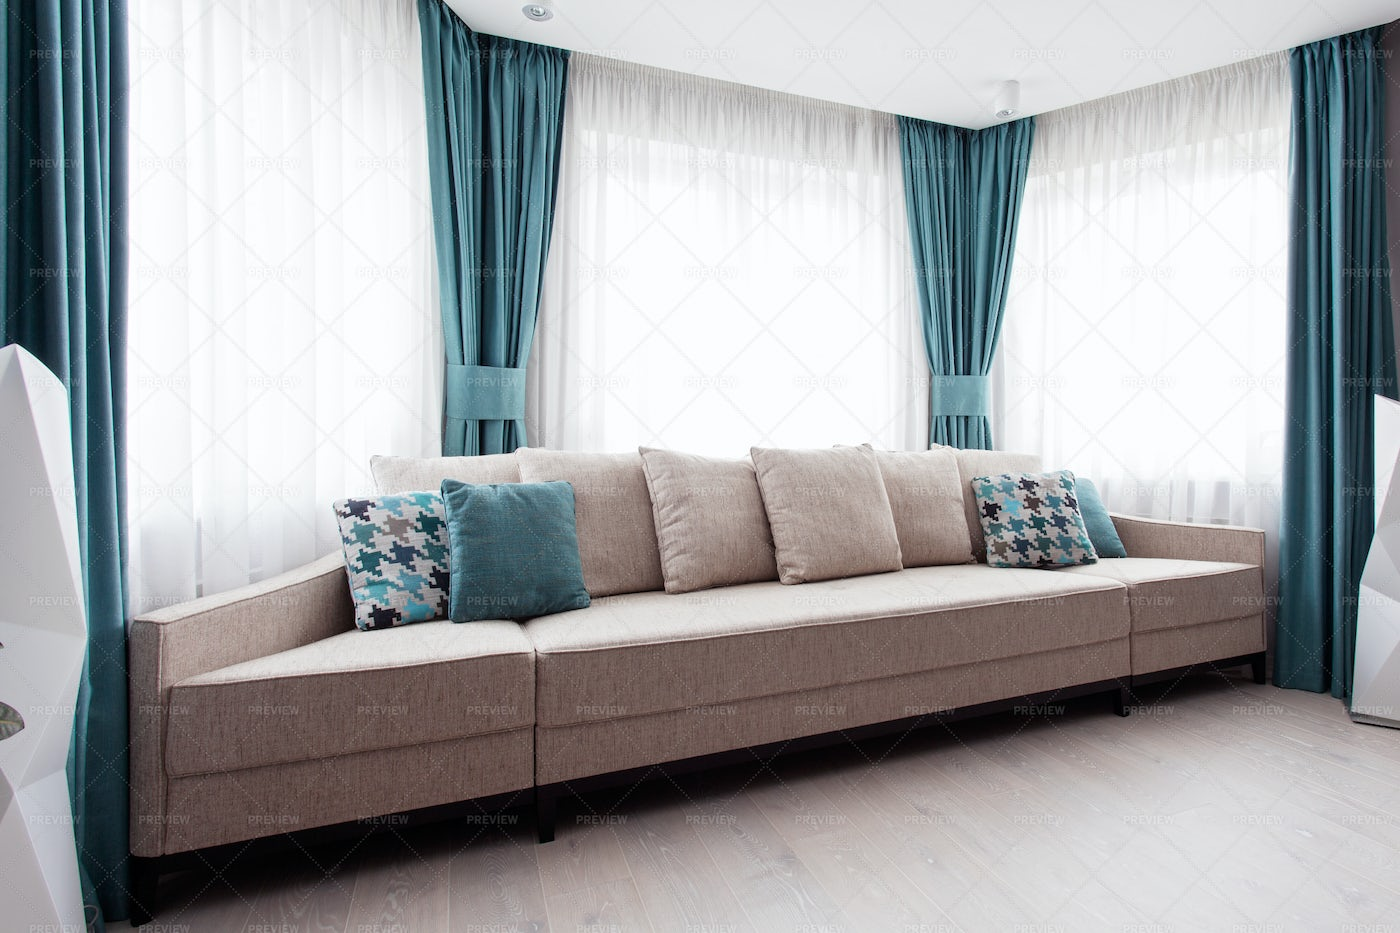 Large Modern Sofa In A Room: Stock Photos